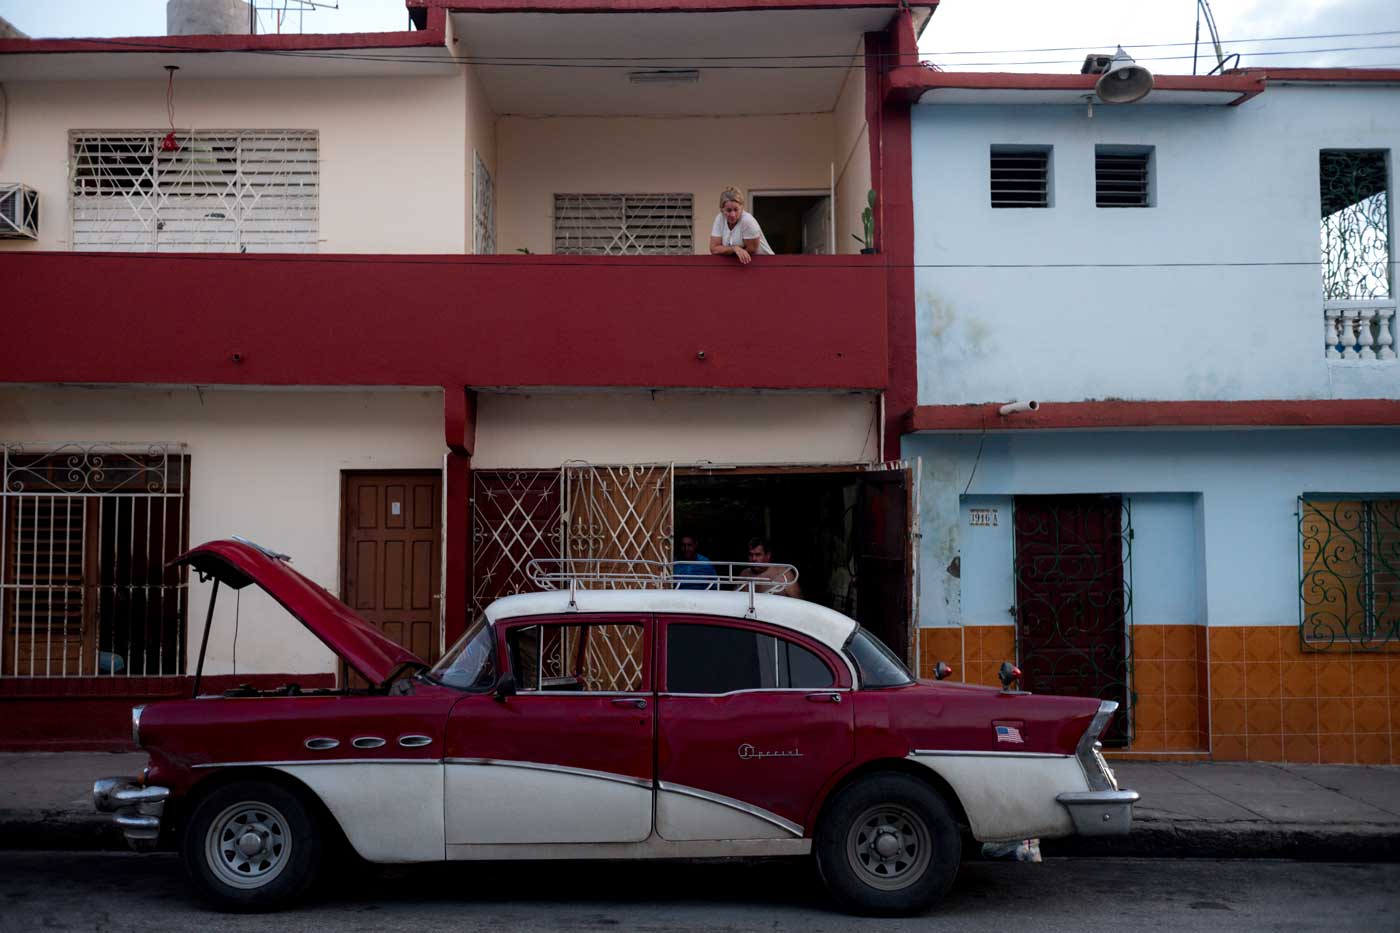 travel-cuba-cienfuegos-leica-m10-rangefinder-35mm-f2-summicron-iv-pre-a-trip-family-car-vintage-old